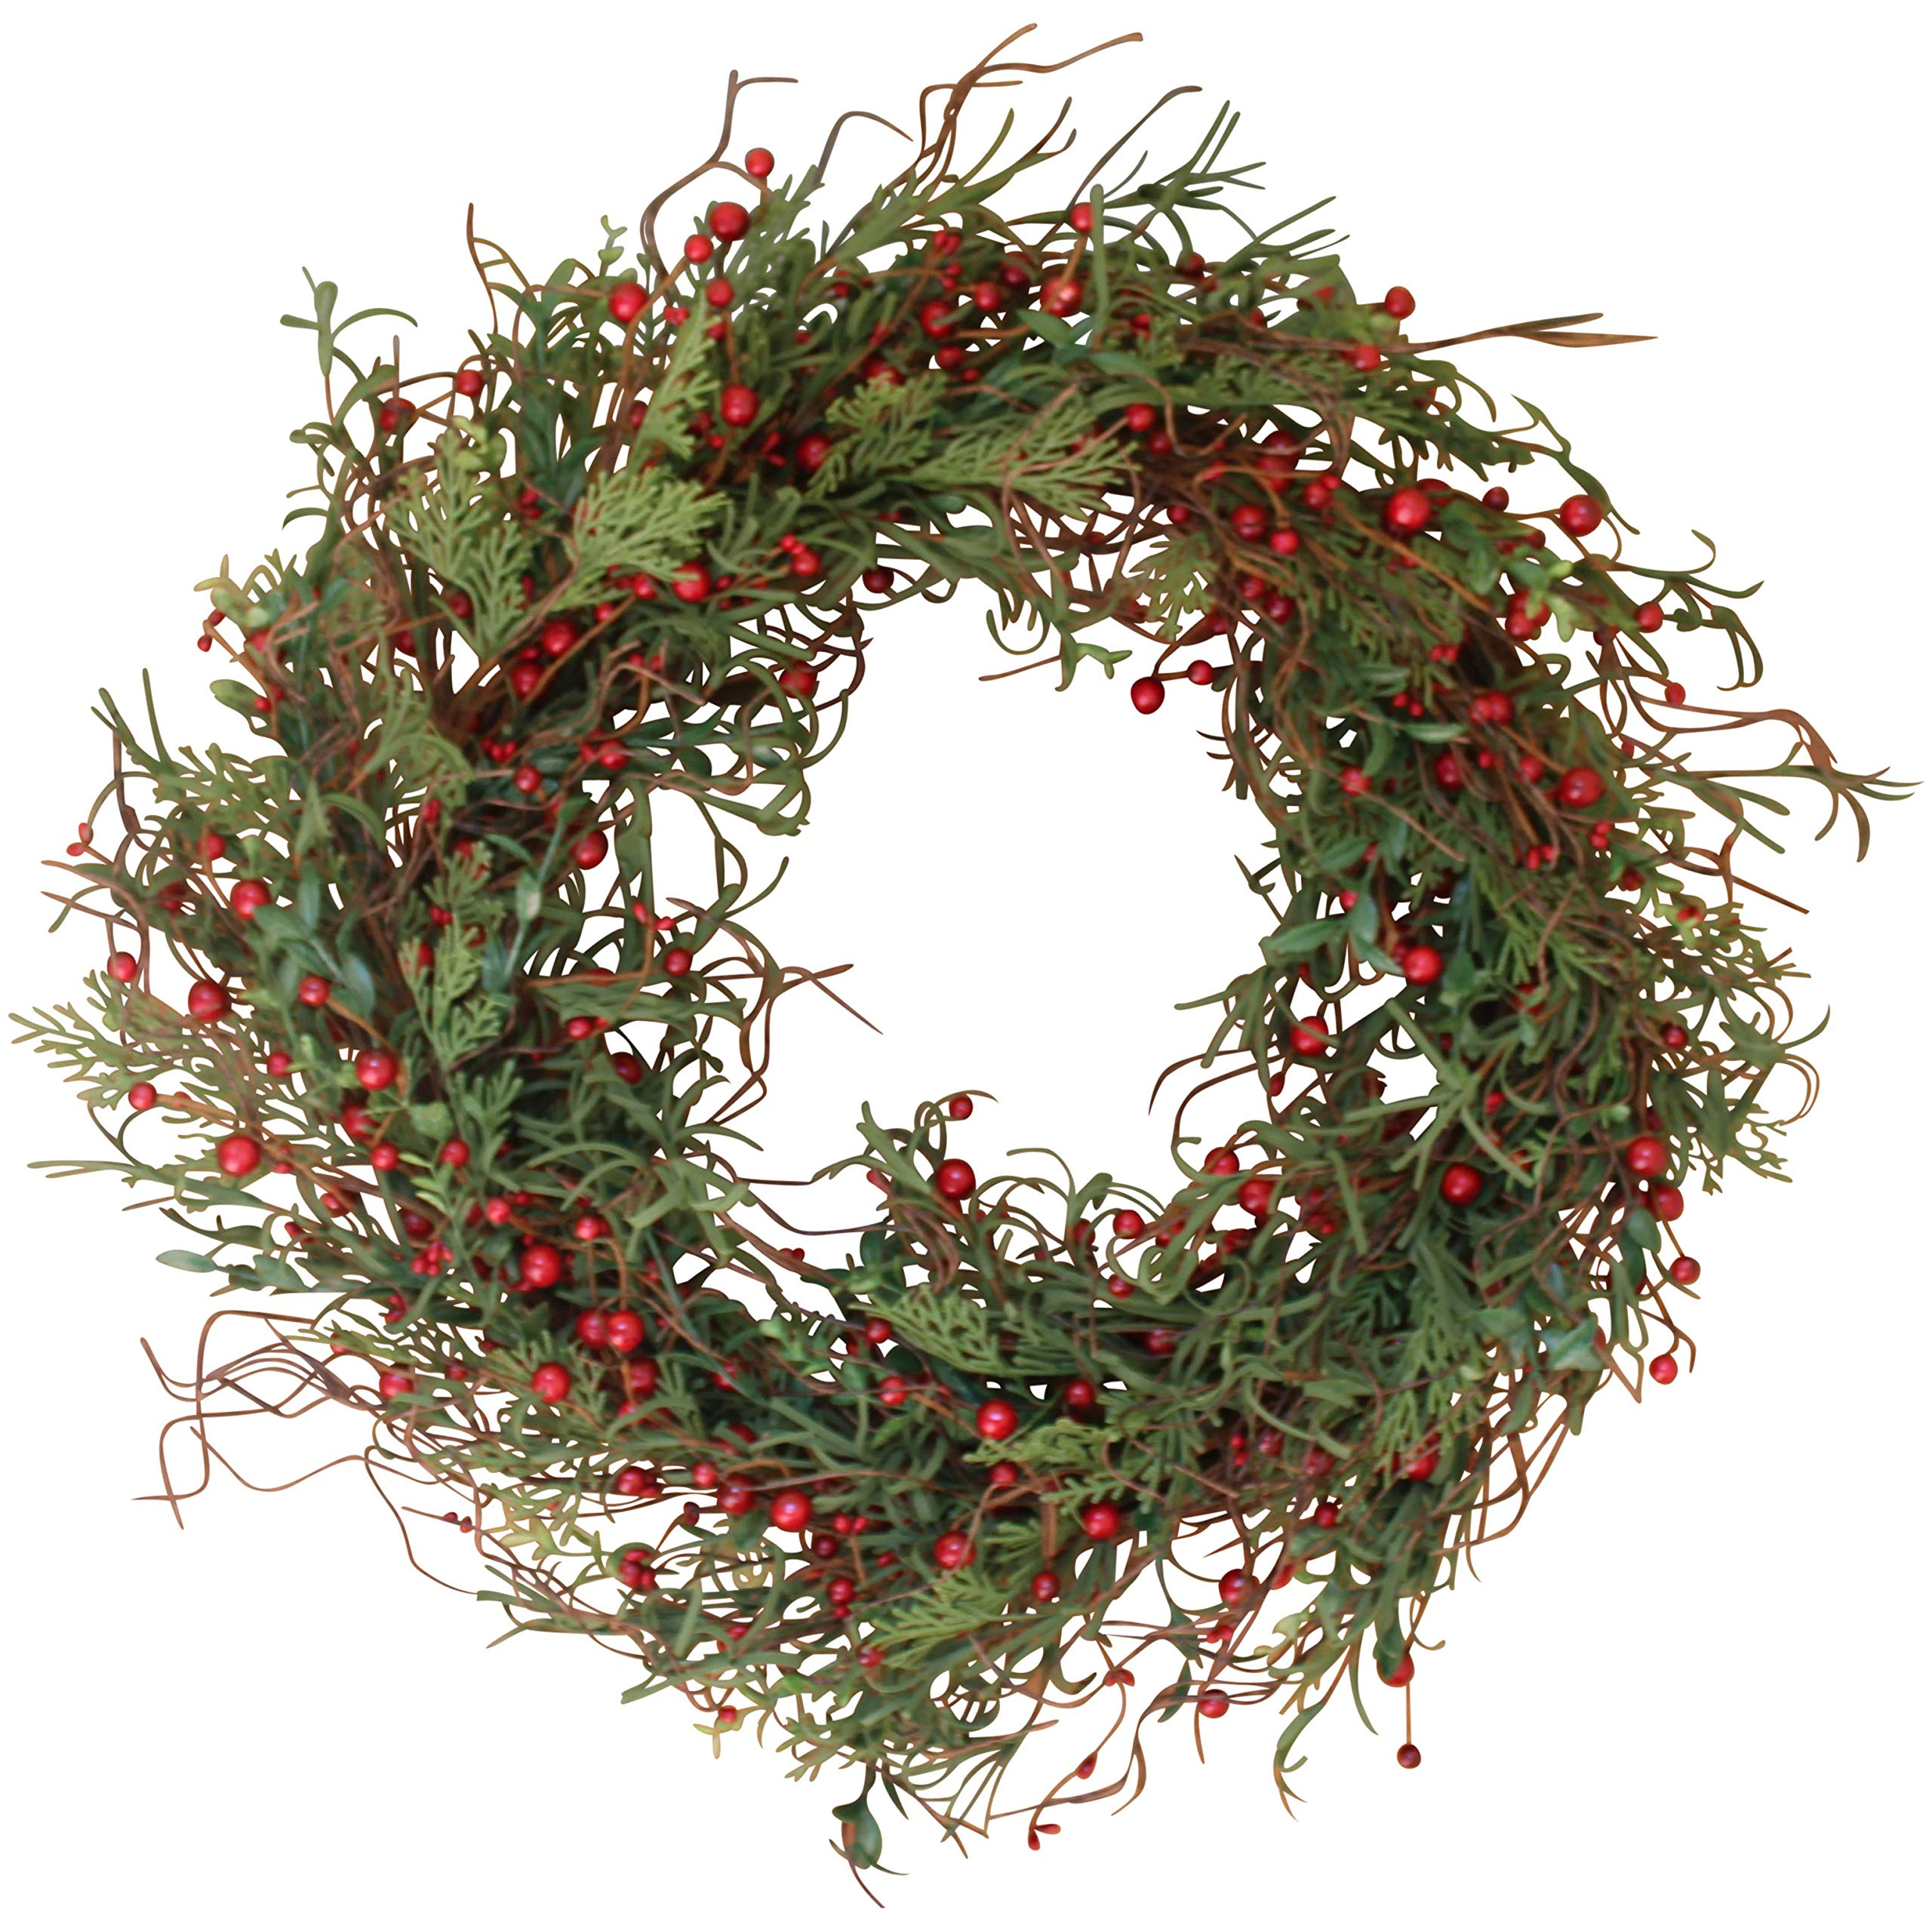 Marion Winter Berry Wreath 24 Inch - Versatile and Stunning Full Design, Approved for Covered Outdoor Use, with Beautiful White Gift Box